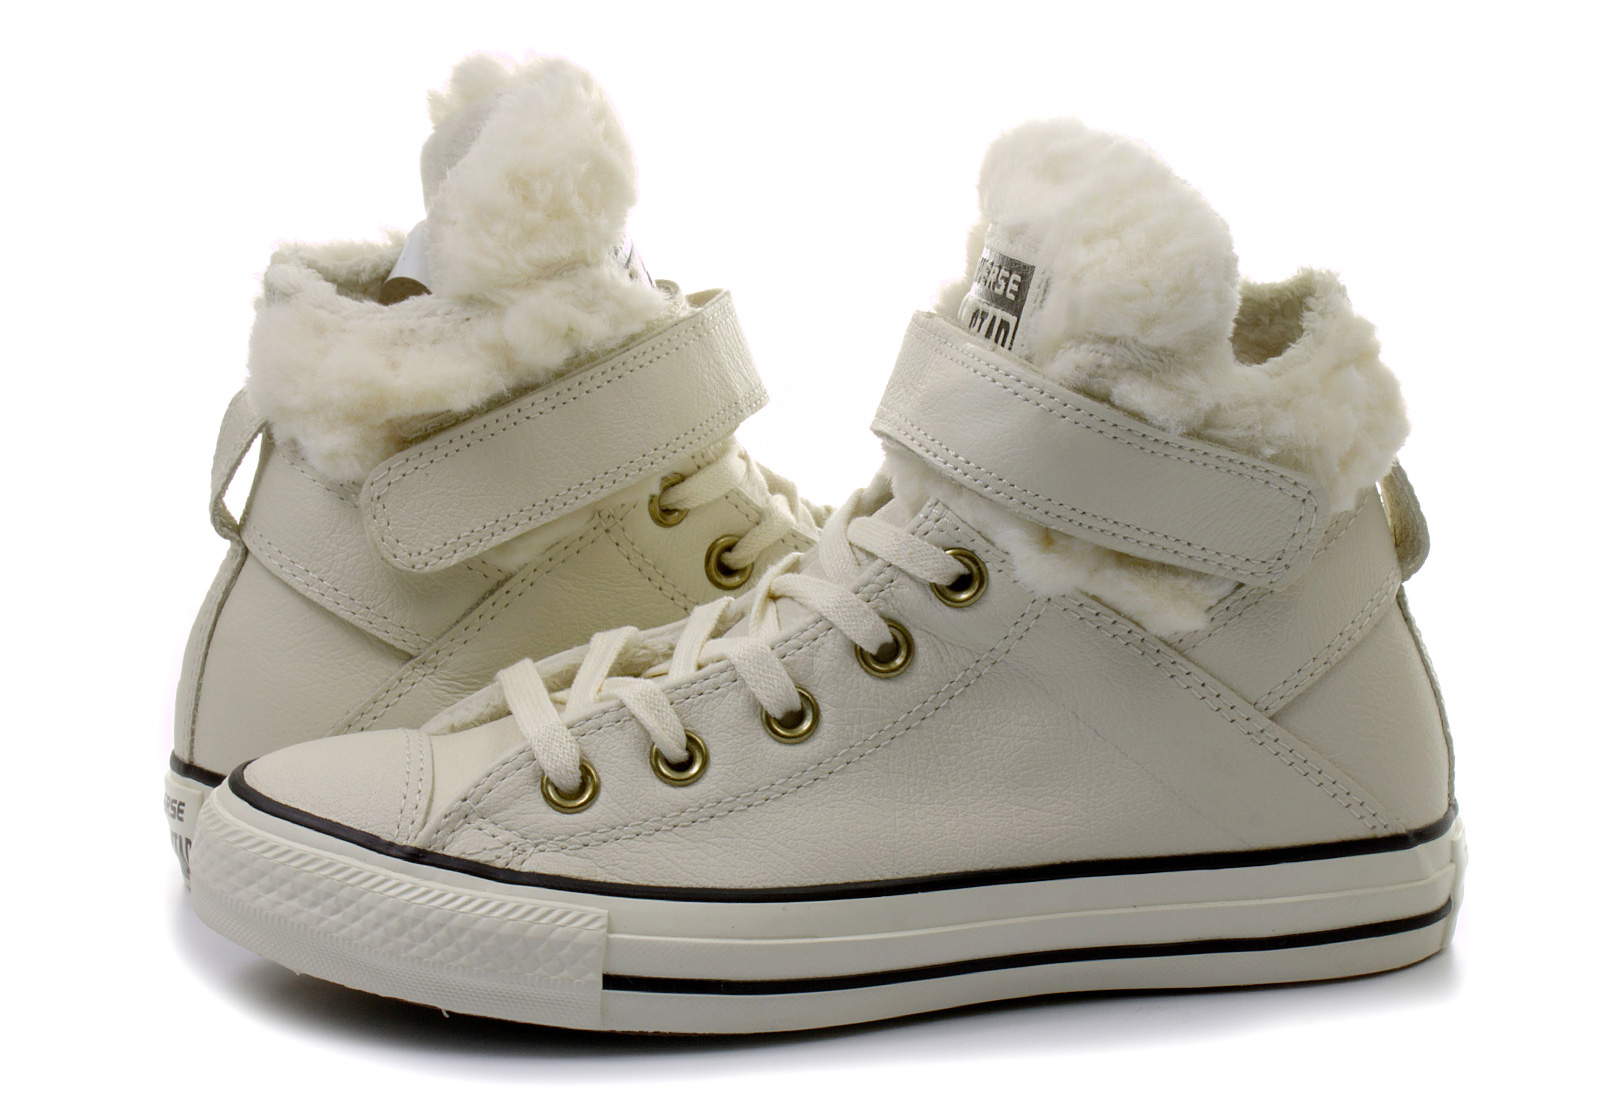 a6bfdba5ef2 Converse Tenisky - Chuck Taylor All Star Brea Leather W Fur ...